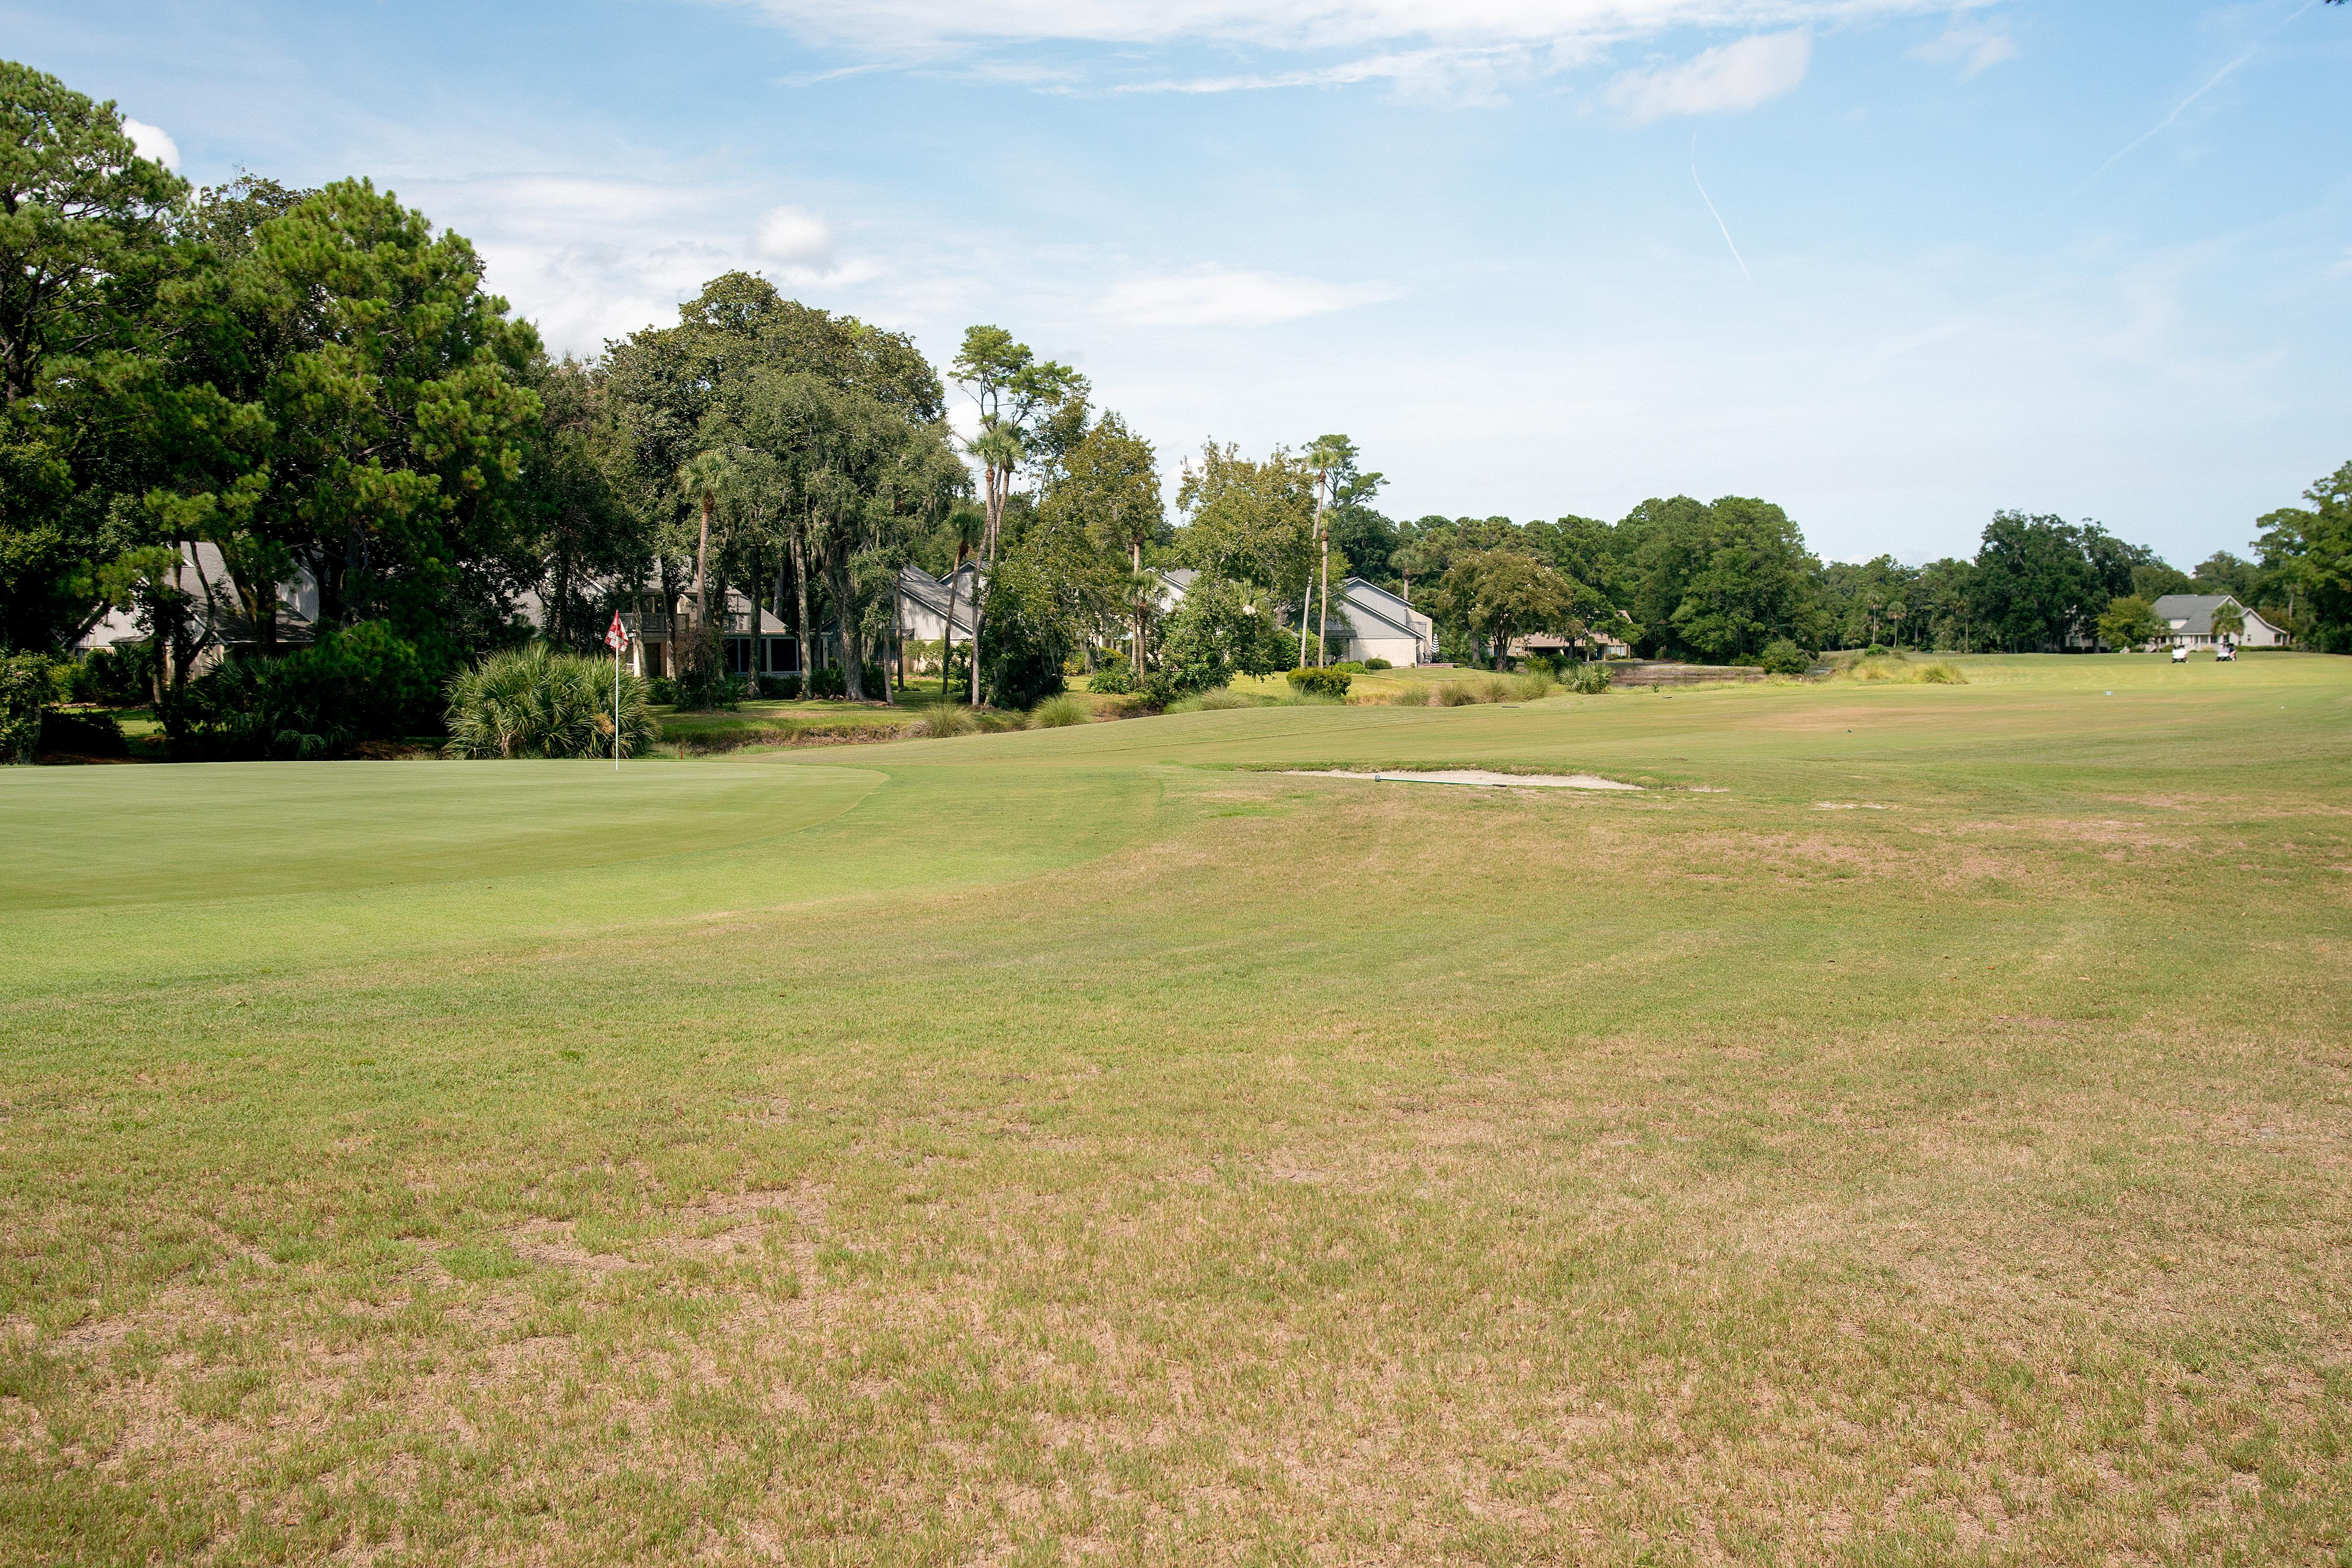 Enjoy tranquil views across the Galleon golf course.